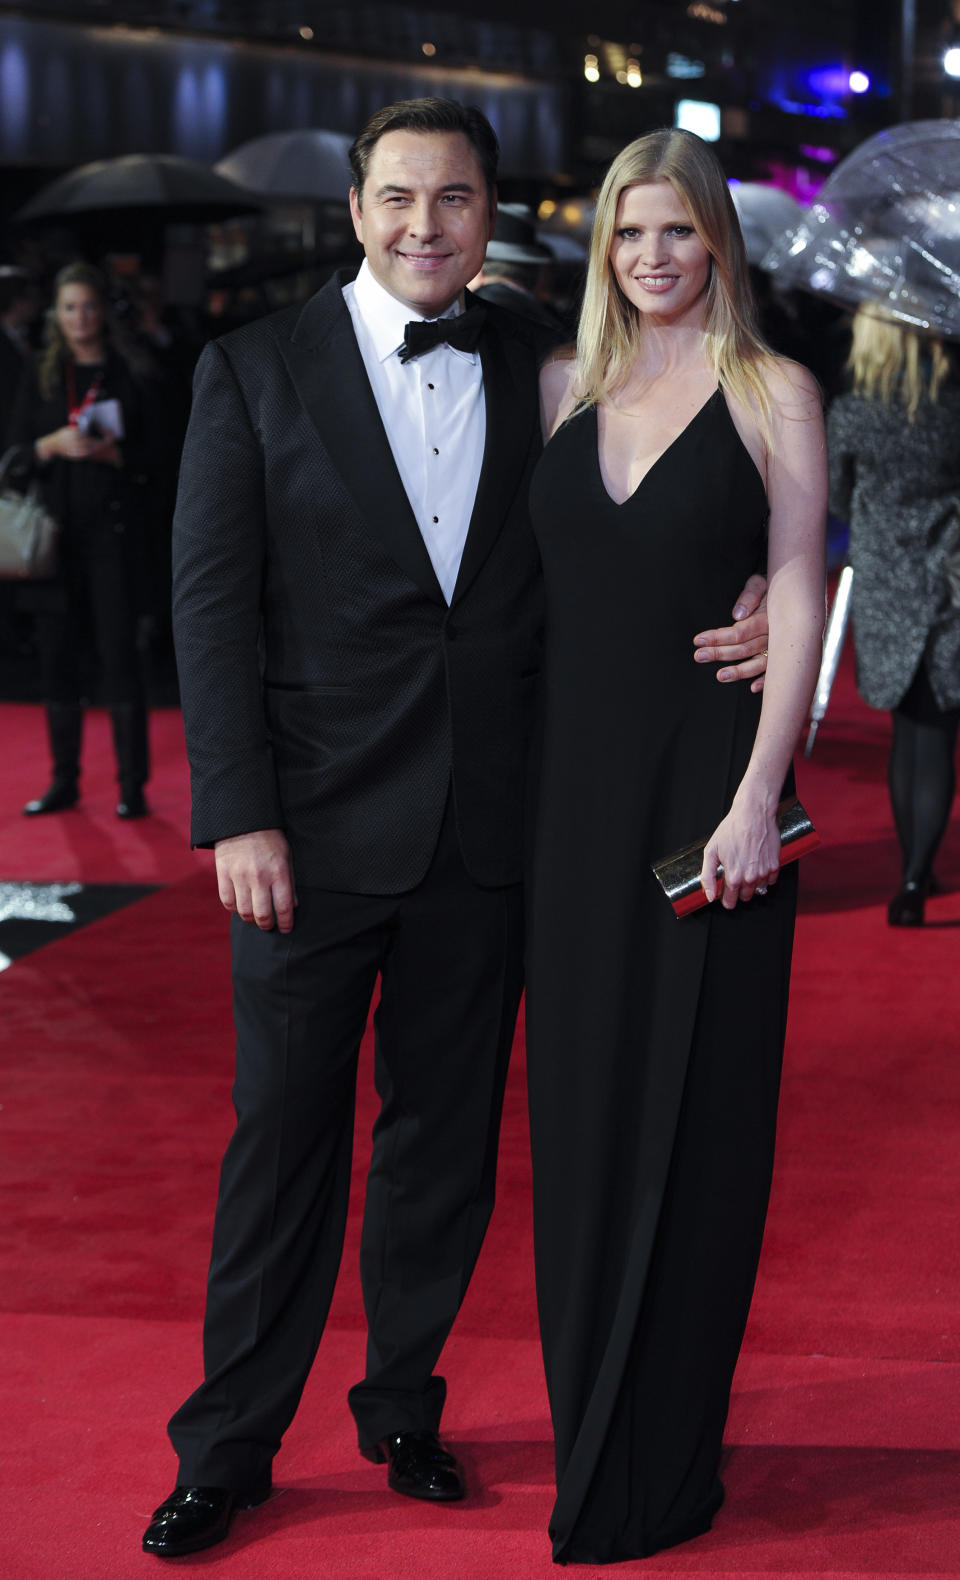 """Actor David Walliams & Lara Stone attends the """"Great Expectations"""" Red Carpet as part of the BFI London Film Festival closing night gala held at the Odeon West End on Sunday, Oct. 21, 2012 in London. (Photo by Ki Price/Invision/AP)"""